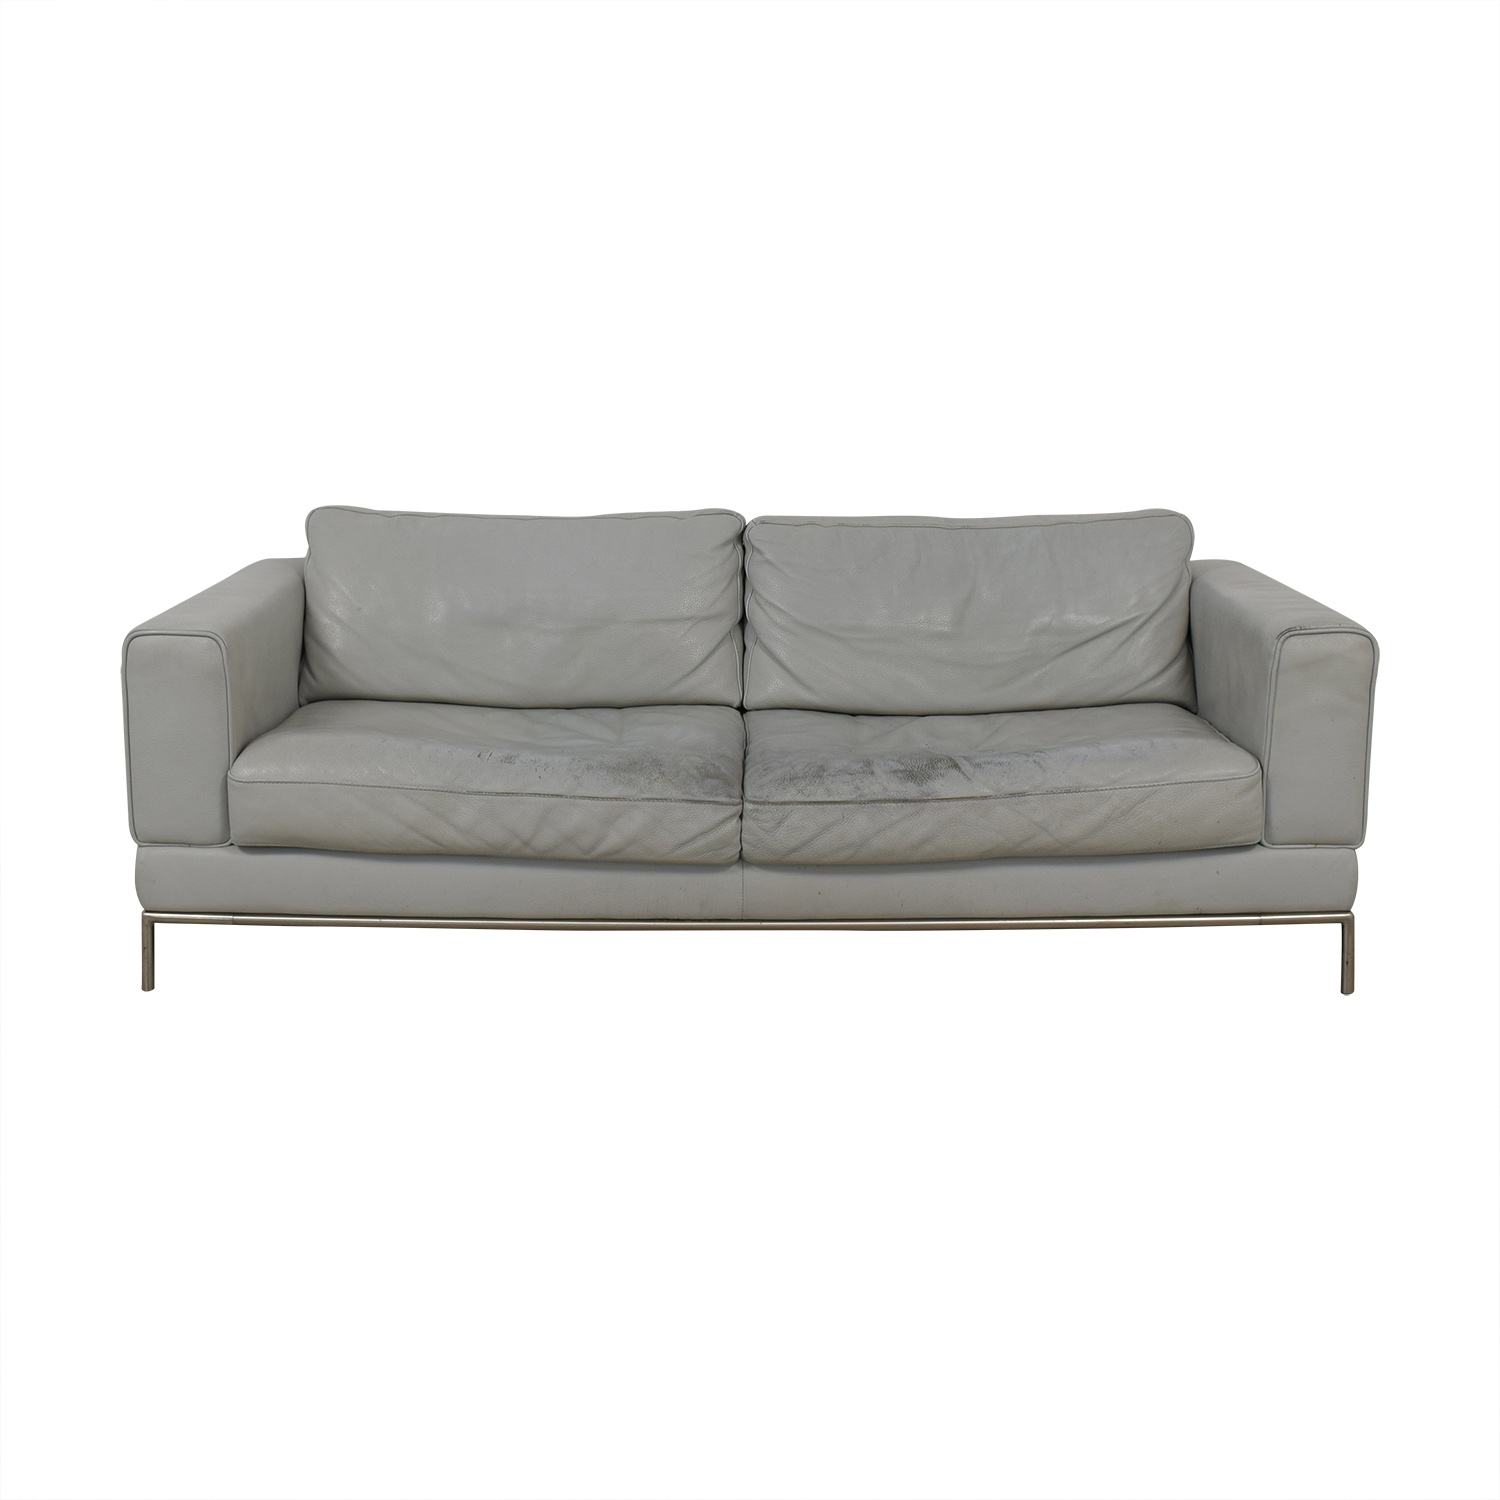 IKEA IKEA Grey Two-Cushion Sofa used